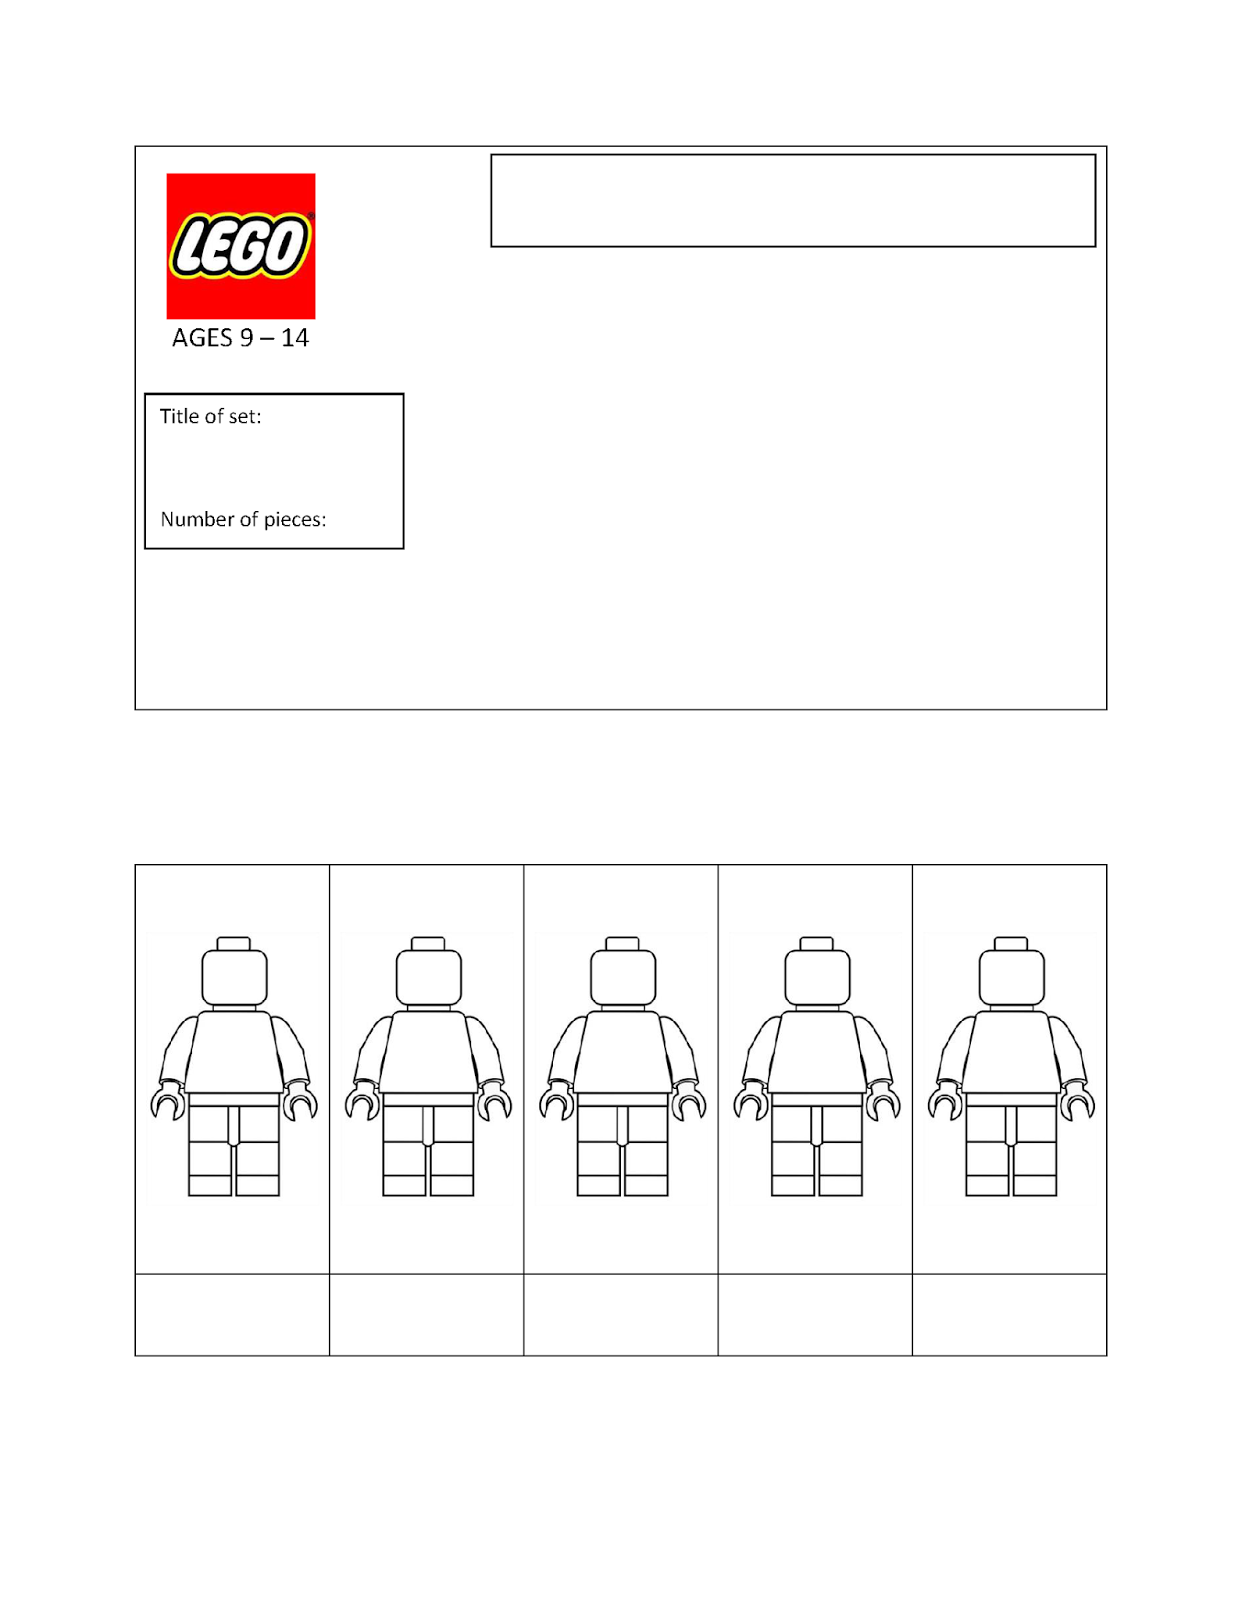 Quinn Rollins Play Like A Pirate LEGO Templates